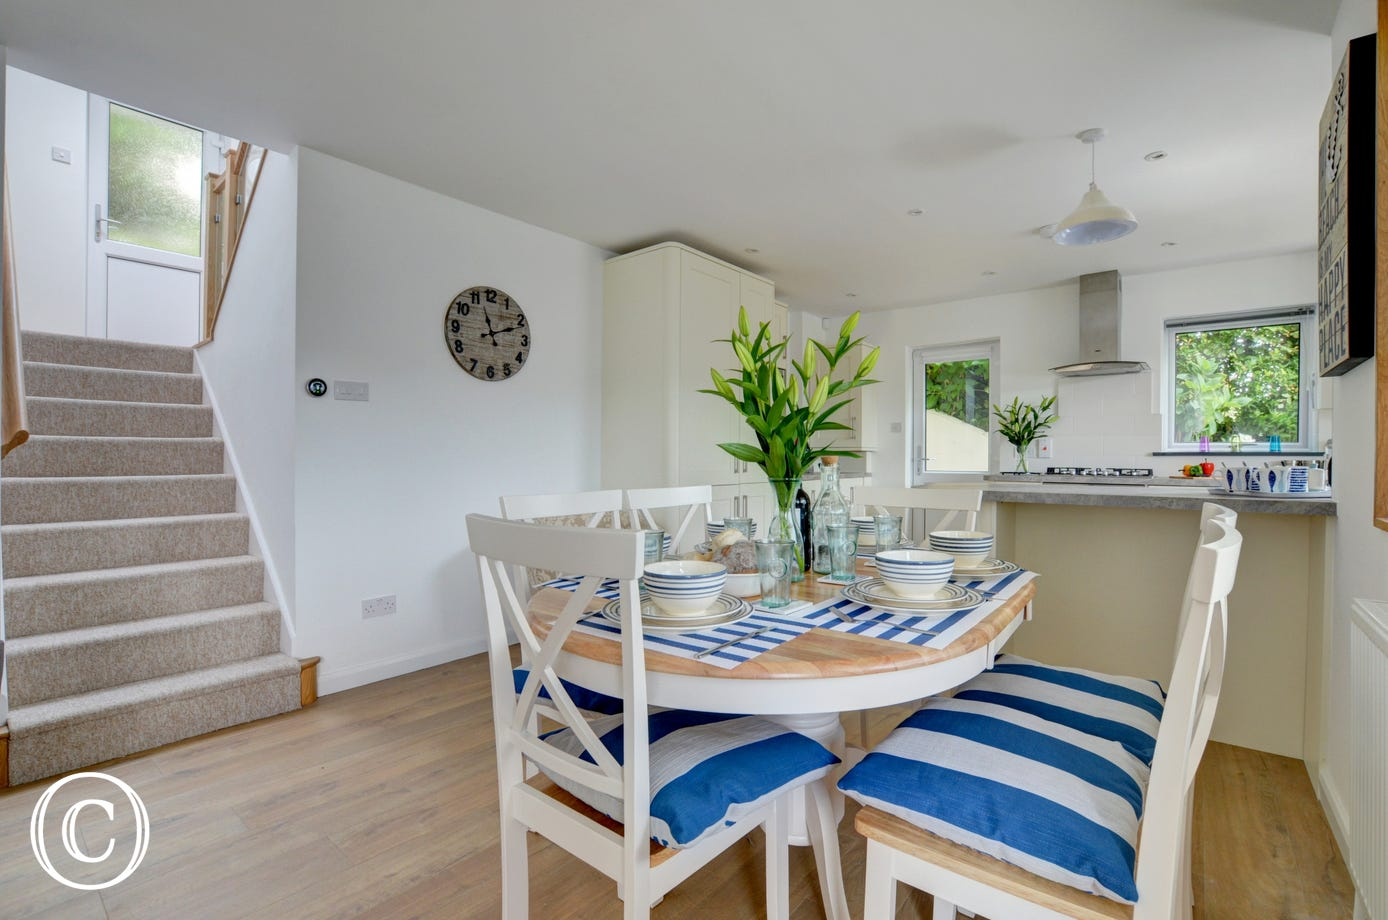 Fabulous dining area with plenty of space to entertain 6 people